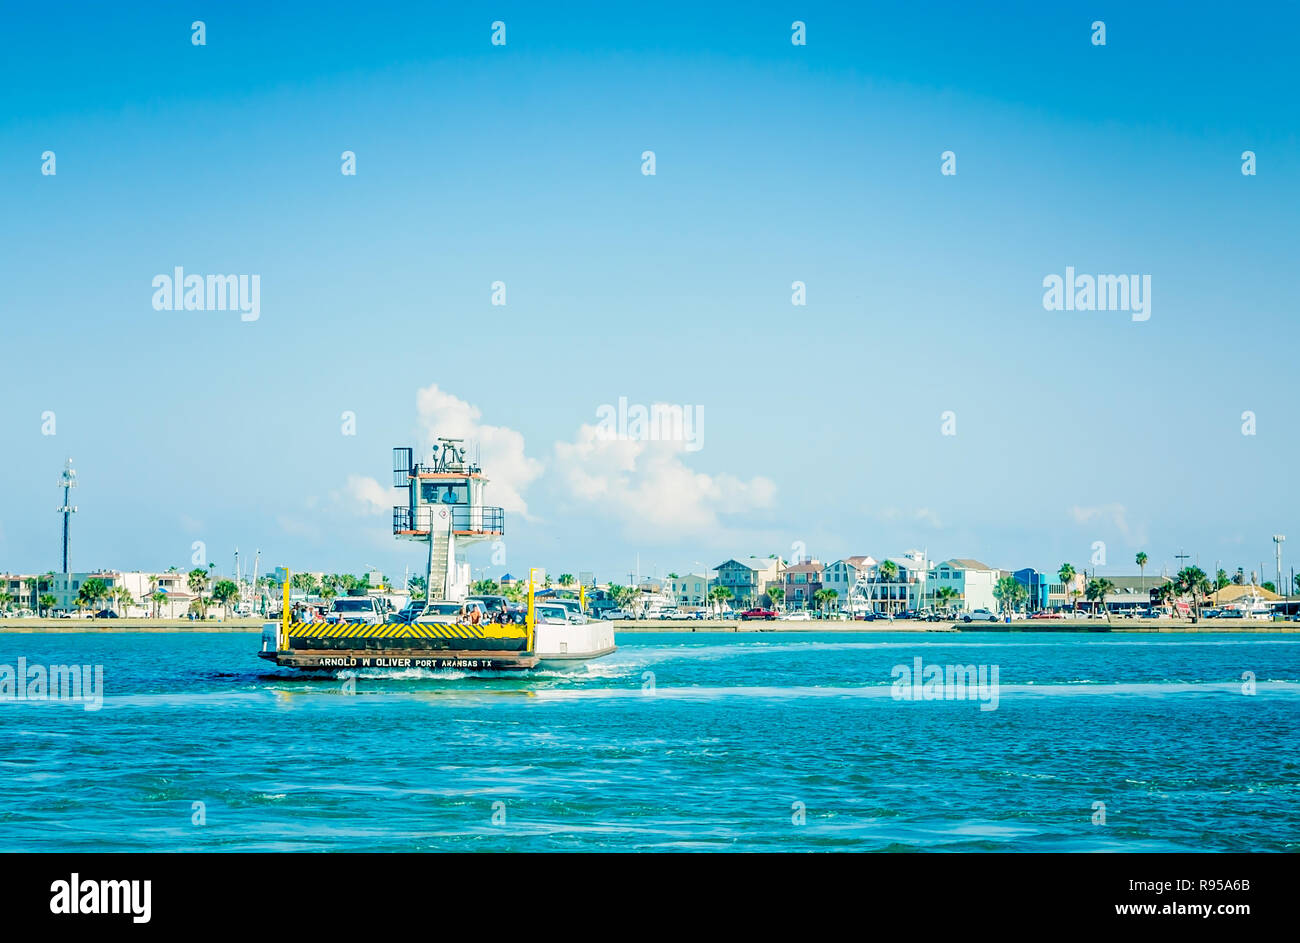 The Arnold W. Oliver ferry shuttles passengers from the Aransas Pass ferry terminal to the Port Aransas ferry landing, in Port Aransas, Texas. - Stock Image